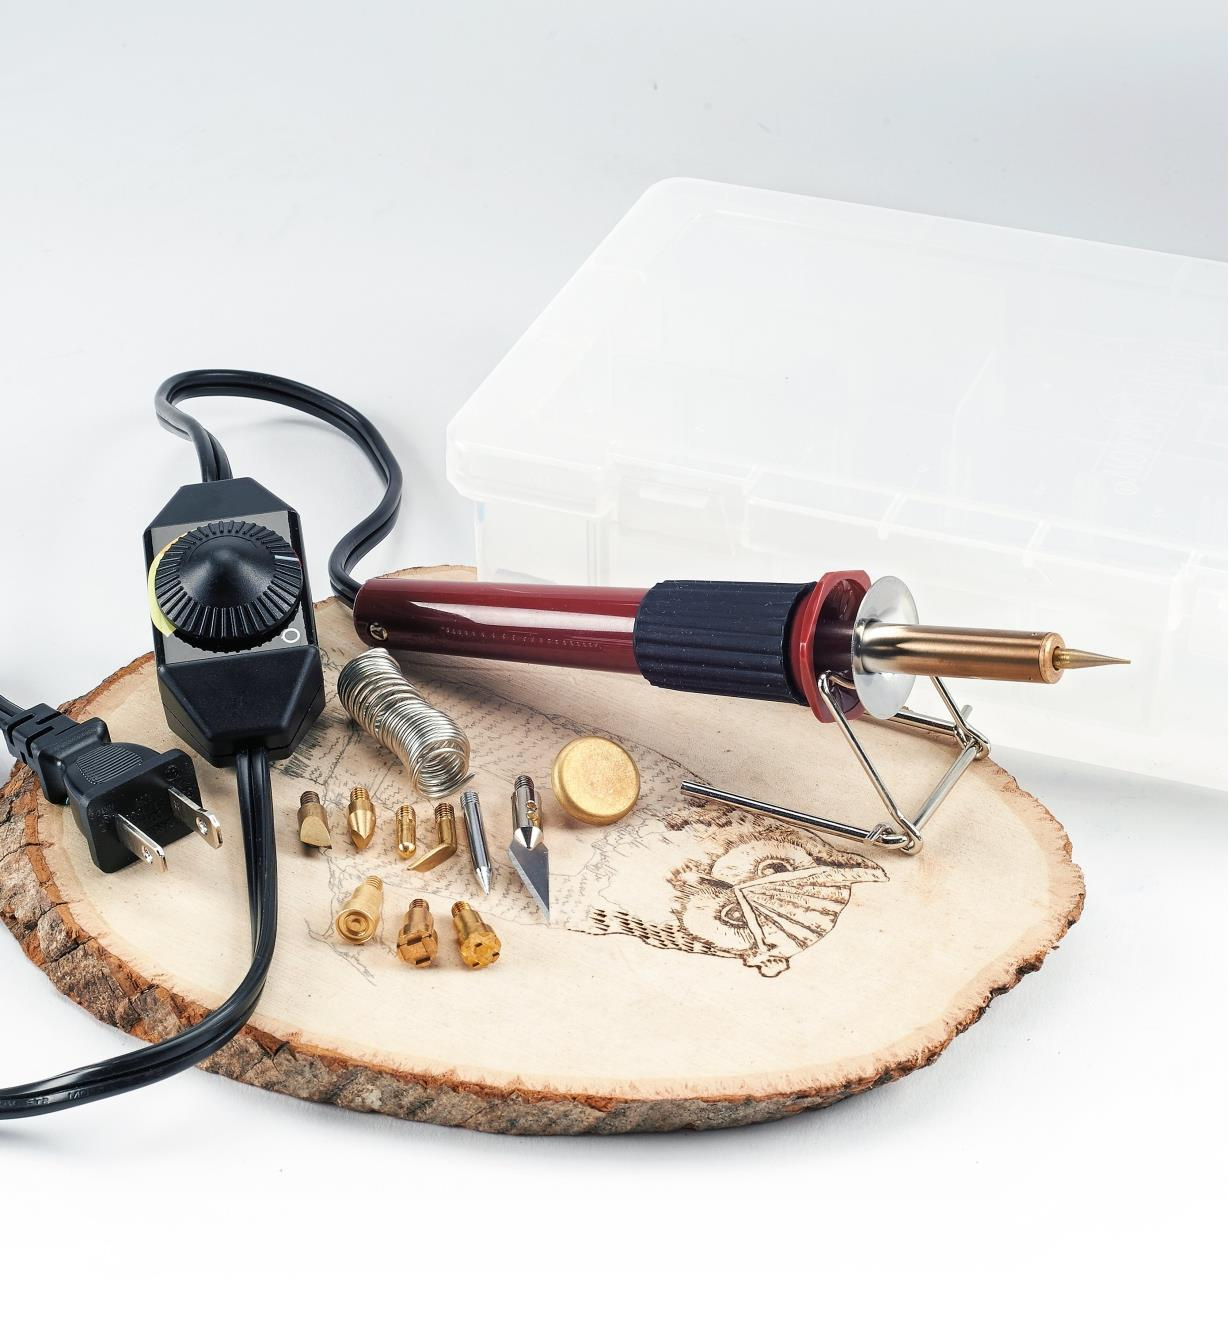 17J1802 - Multi-Function Heat Pen Set